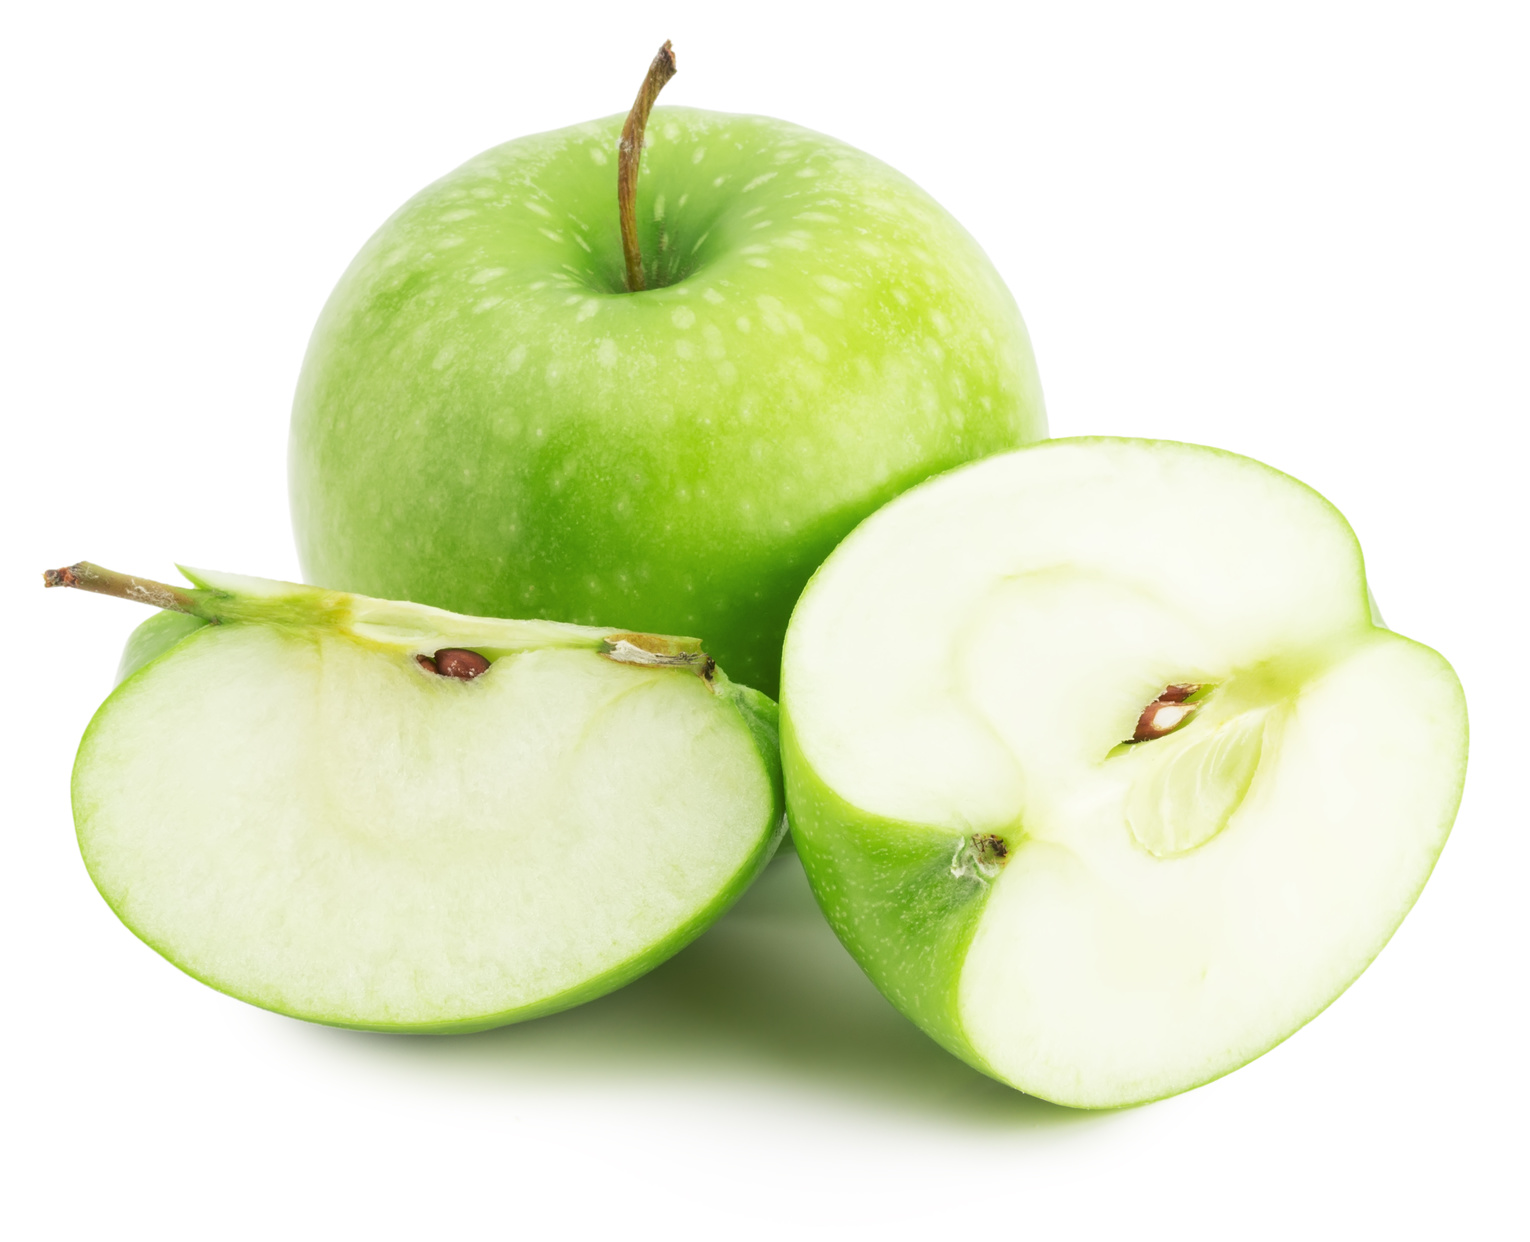 green apple with slice isolated on the white background.